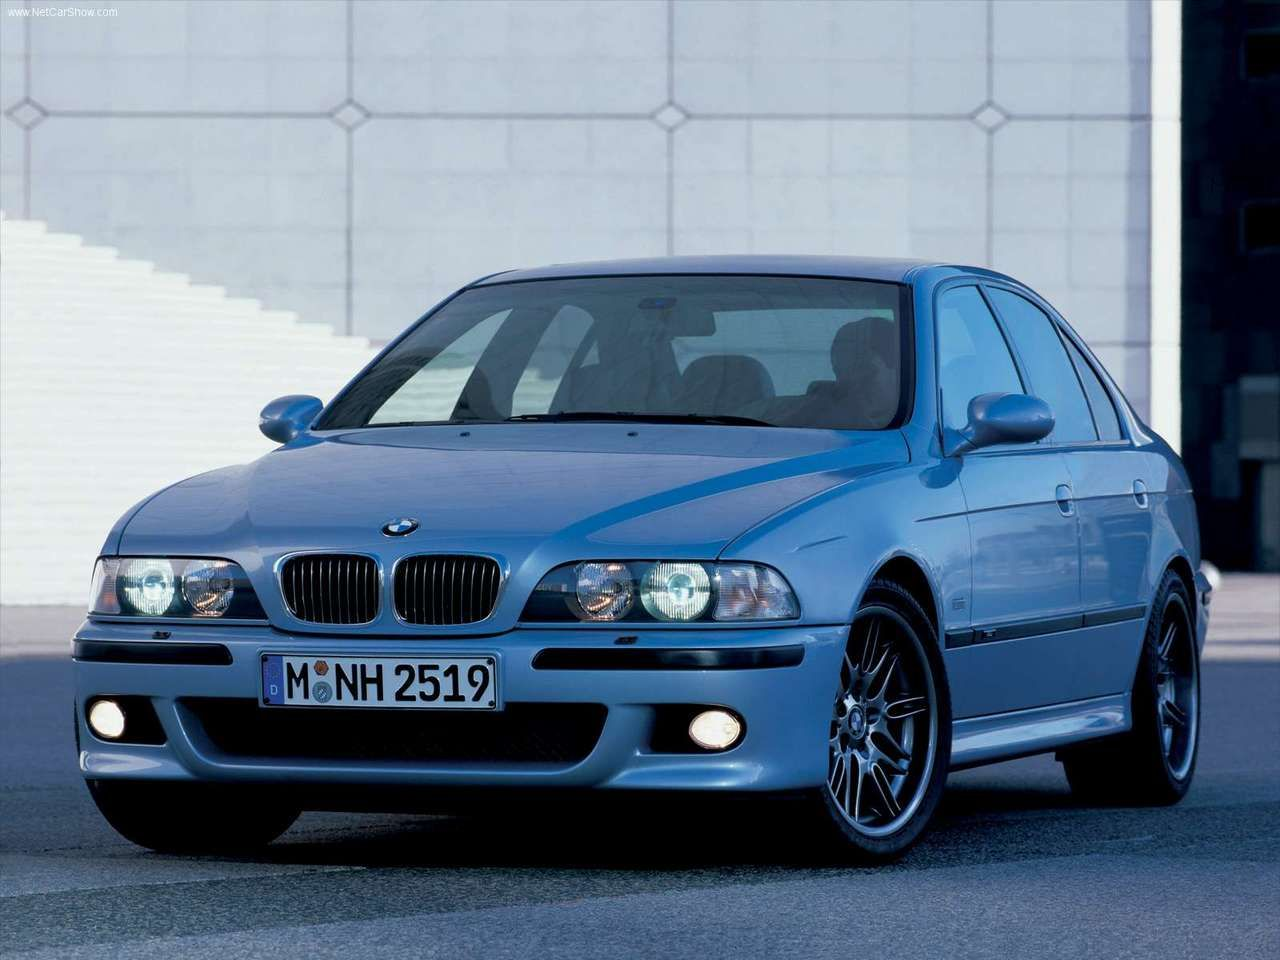 2001 BMW M5 | Motoring Heaven | Pinterest | BMW M5, BMW and Cars